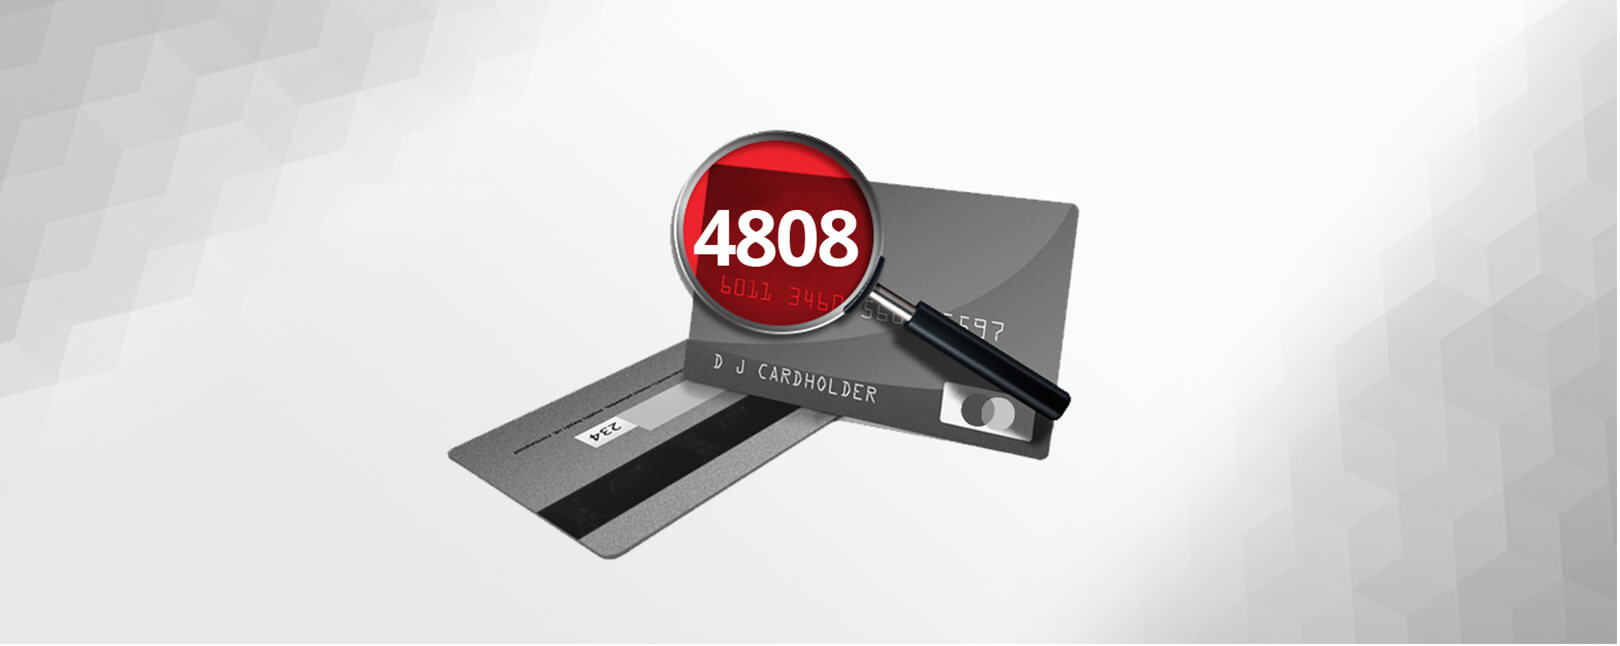 4808- Expired Chargeback Protection Period